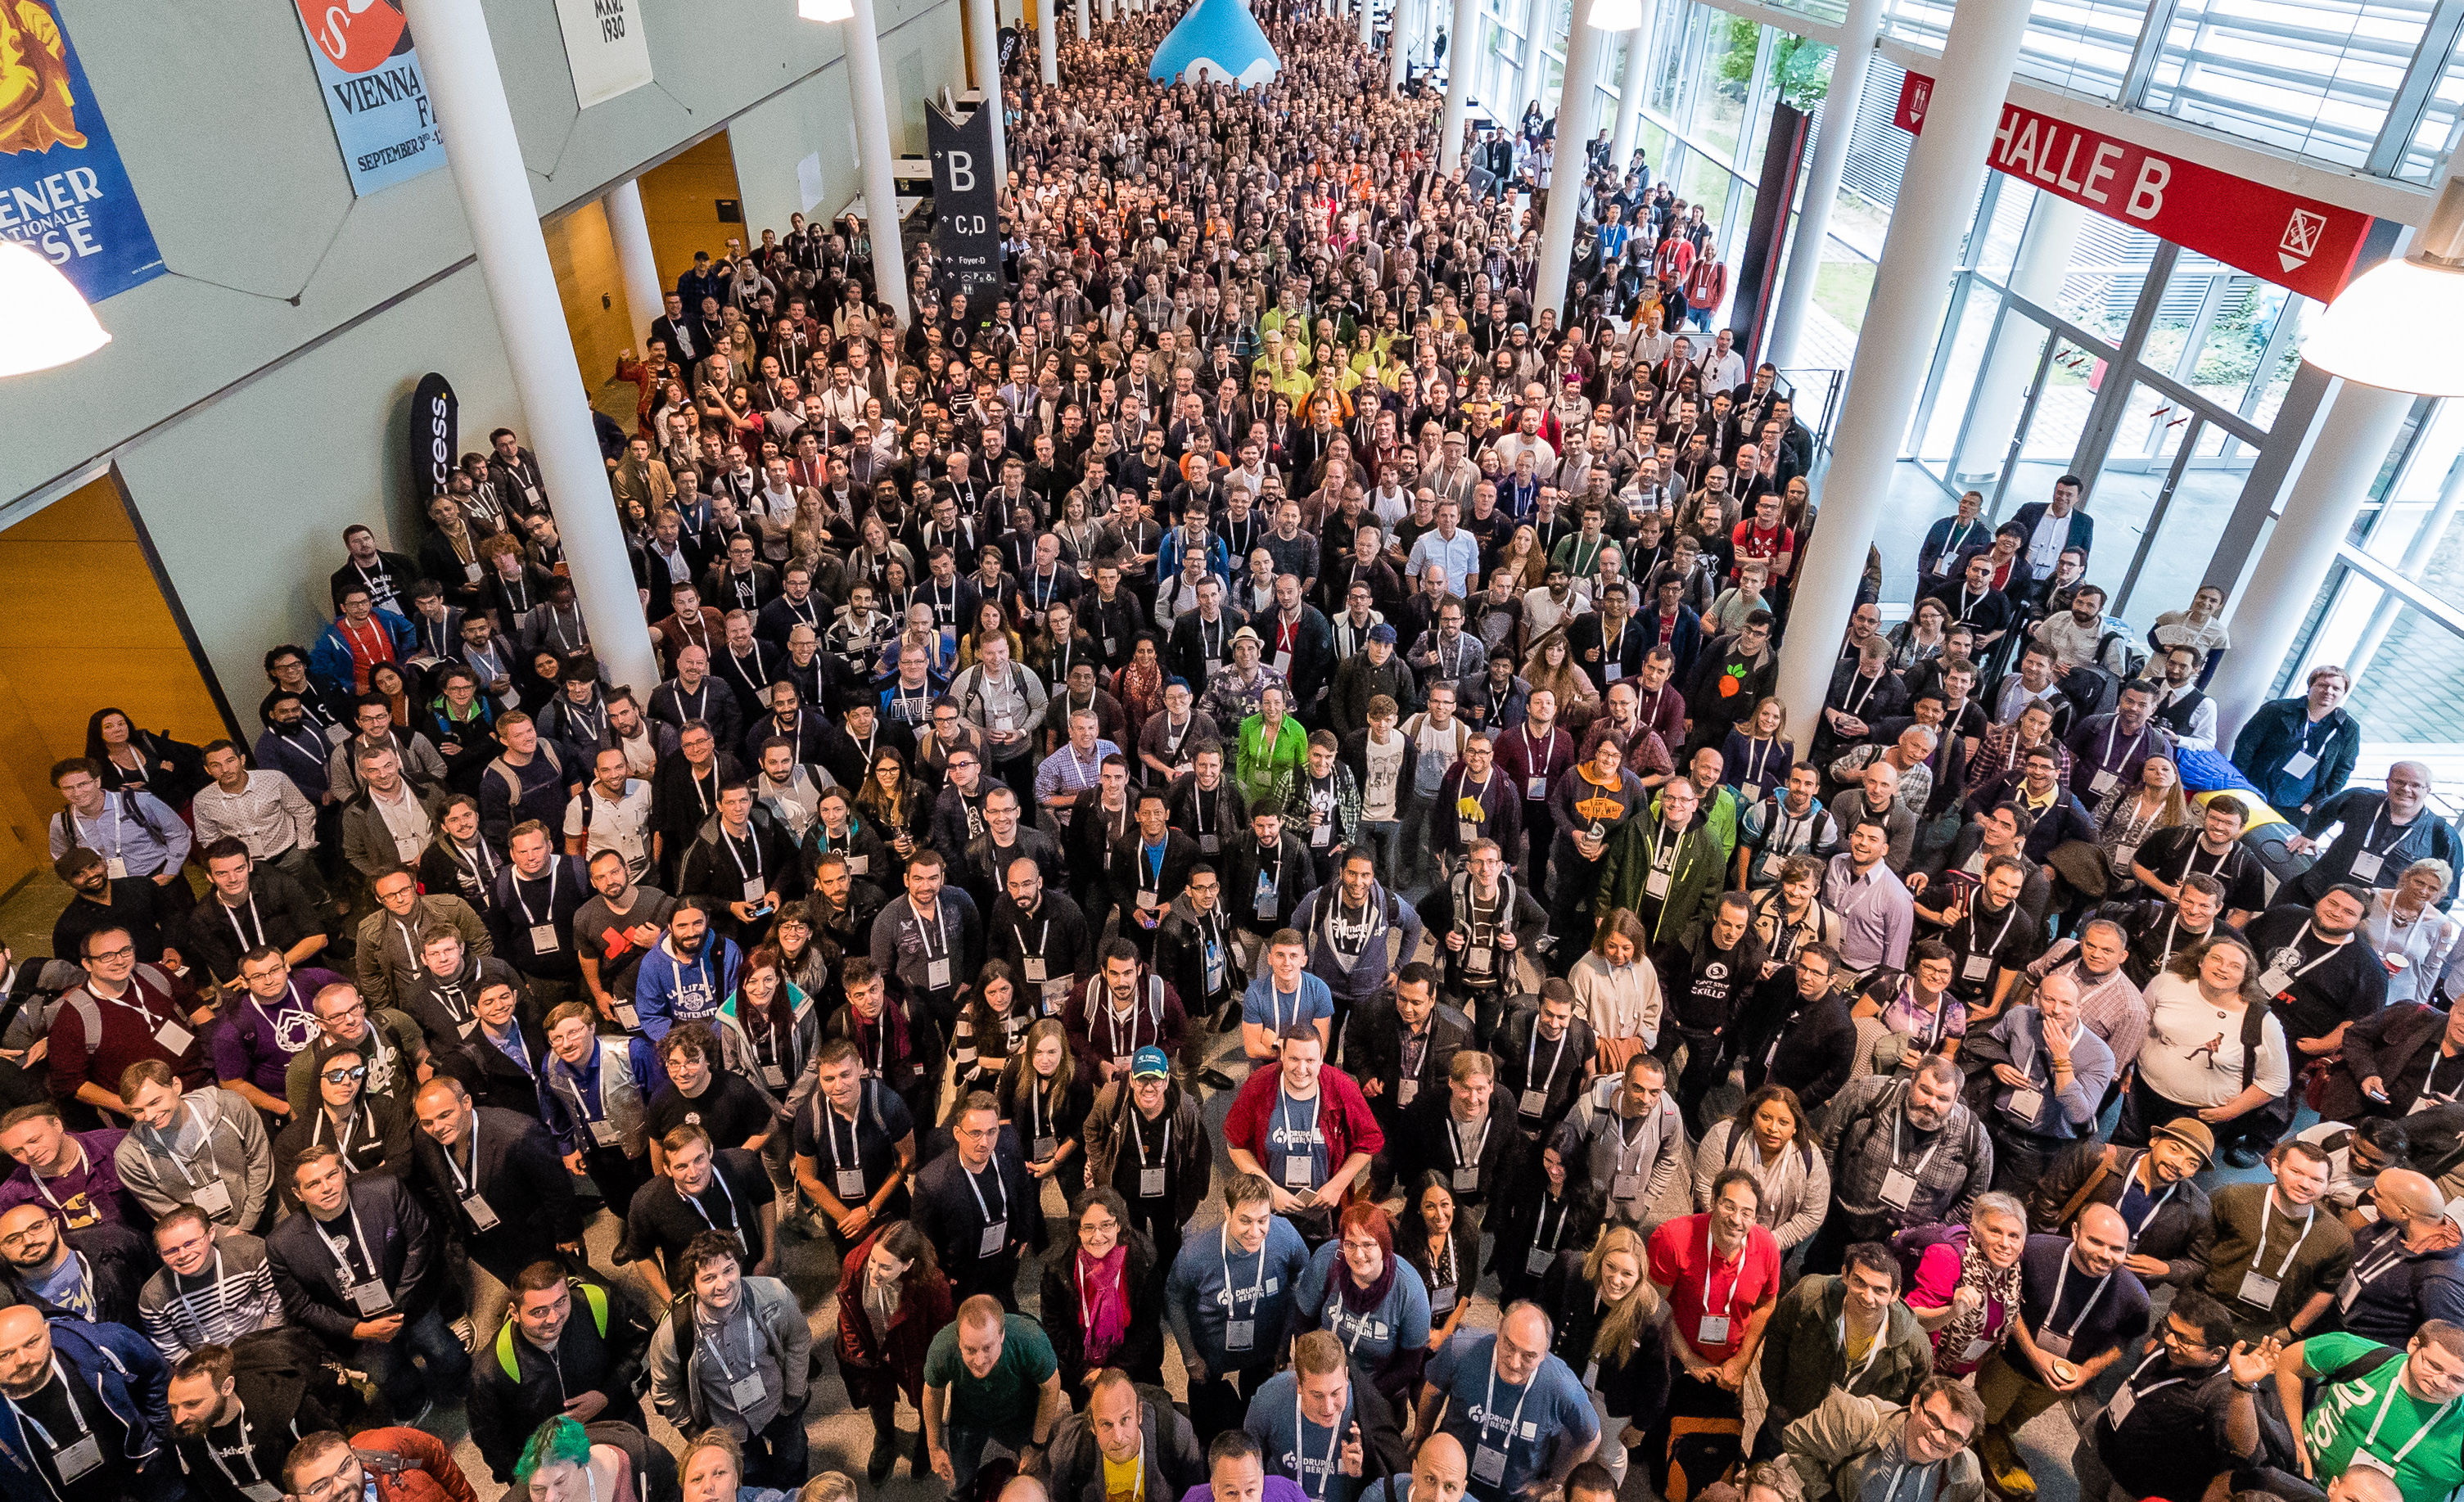 Drupal 8 at drupalcon 2017 inviqa uk this time last year we were talking about a drupal 8 tipping point wed just got back from drupalcon 2016 in dublin and were excited about a noticeable xflitez Gallery